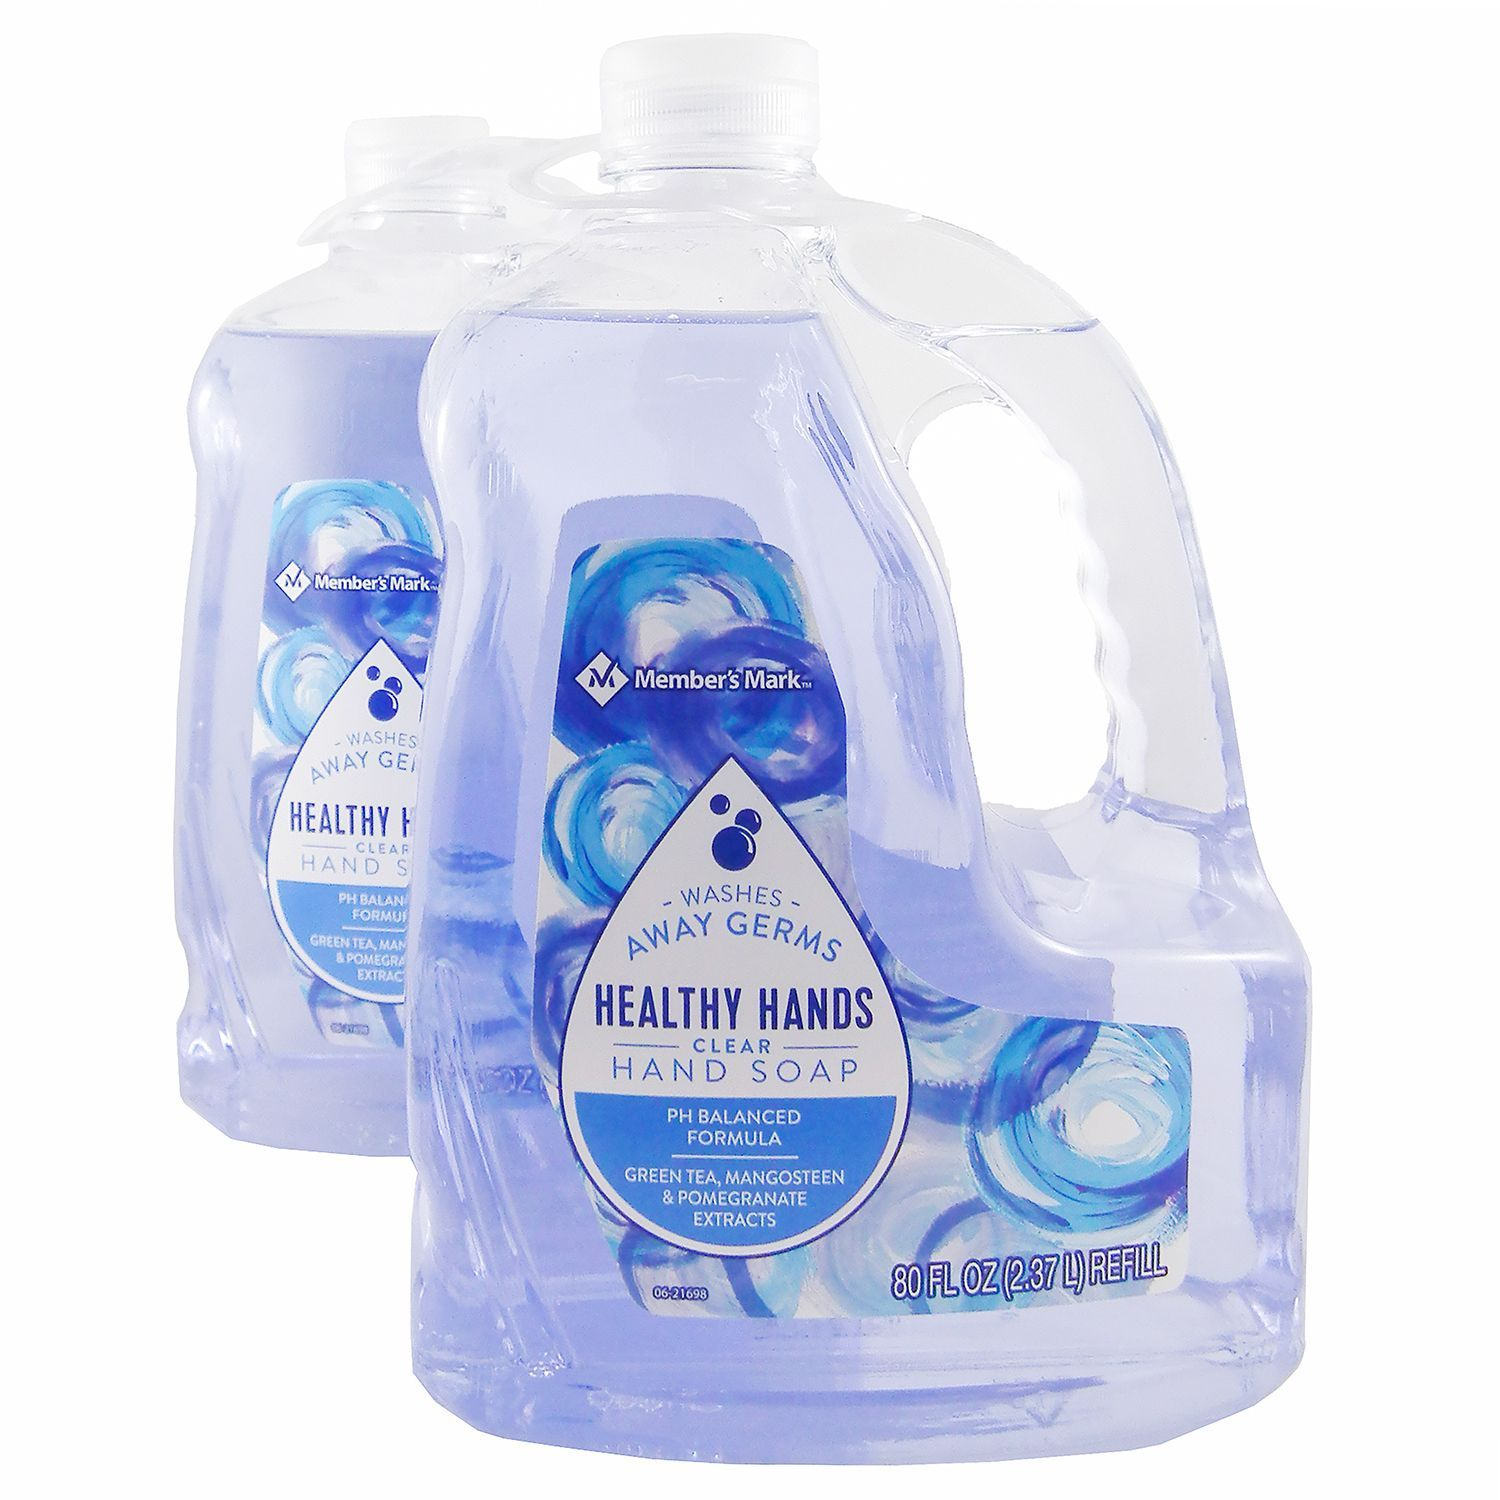 Member's Mark Hand Soap Refill, Clear 80 fl. oz./ 2.37 l, 2 Bottles